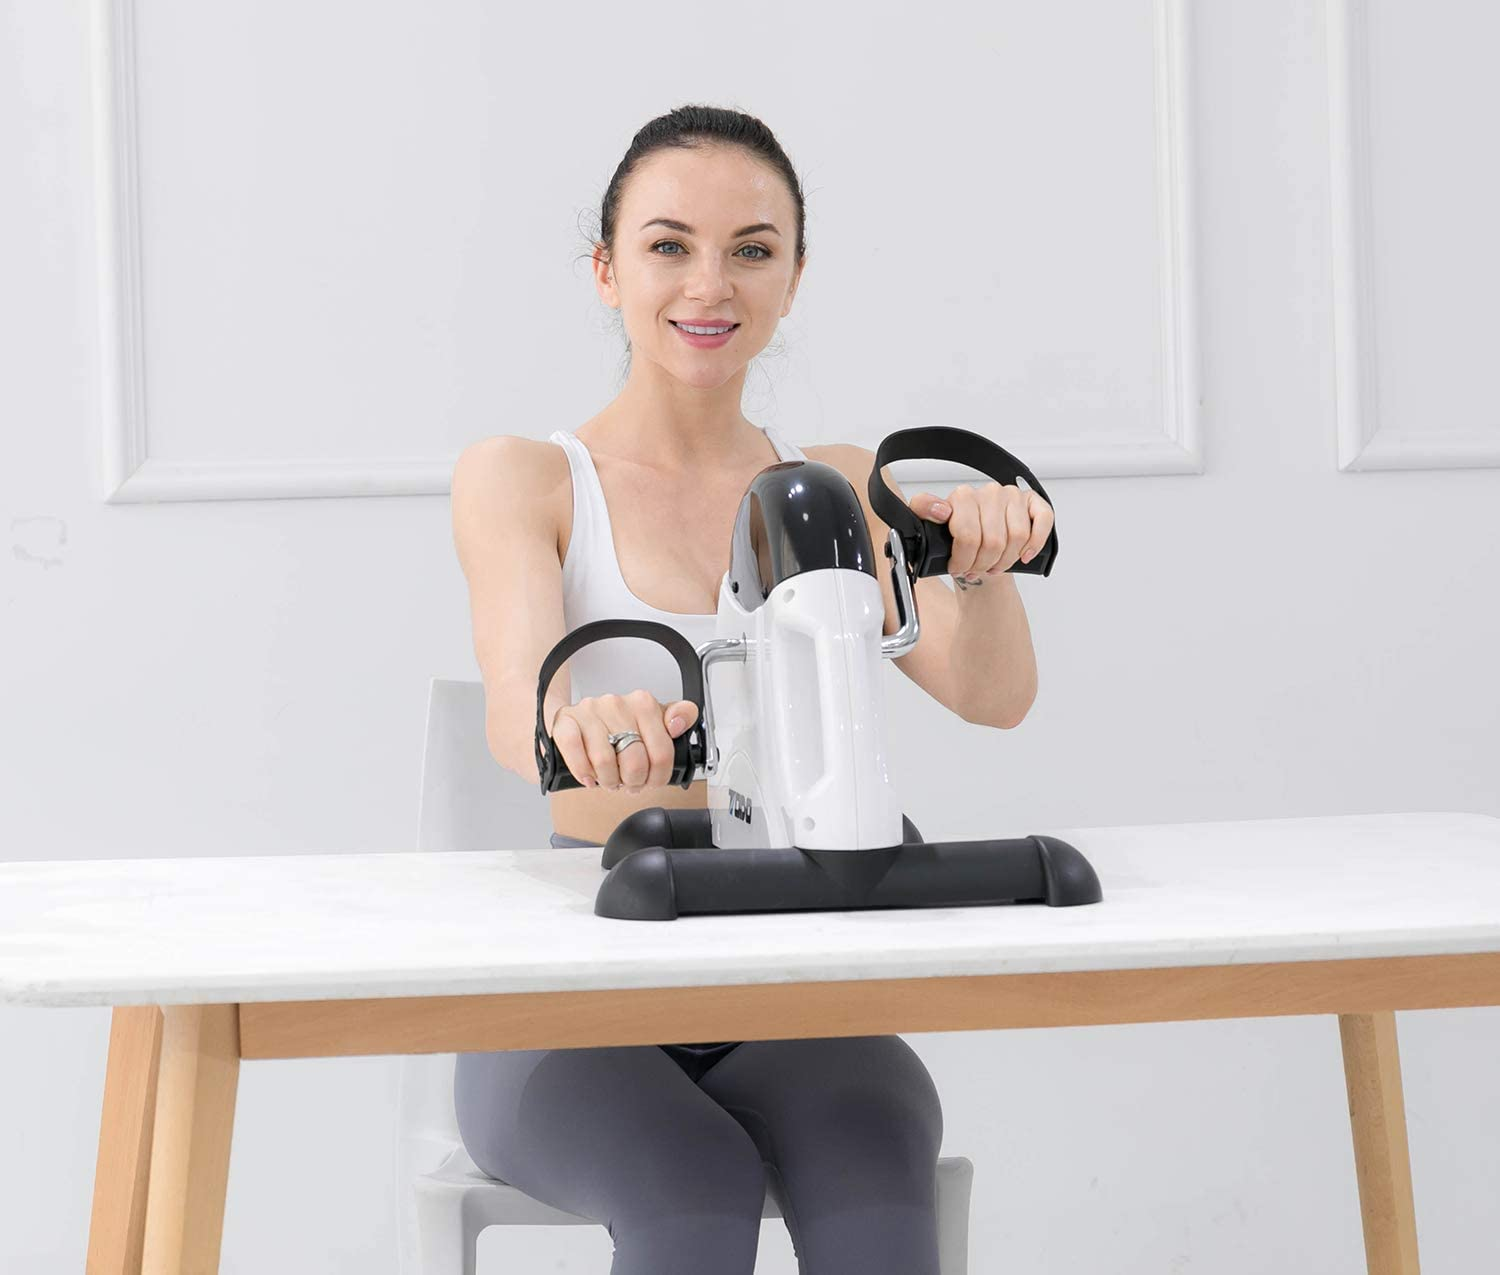 TODO Pedal Exerciser with Girl